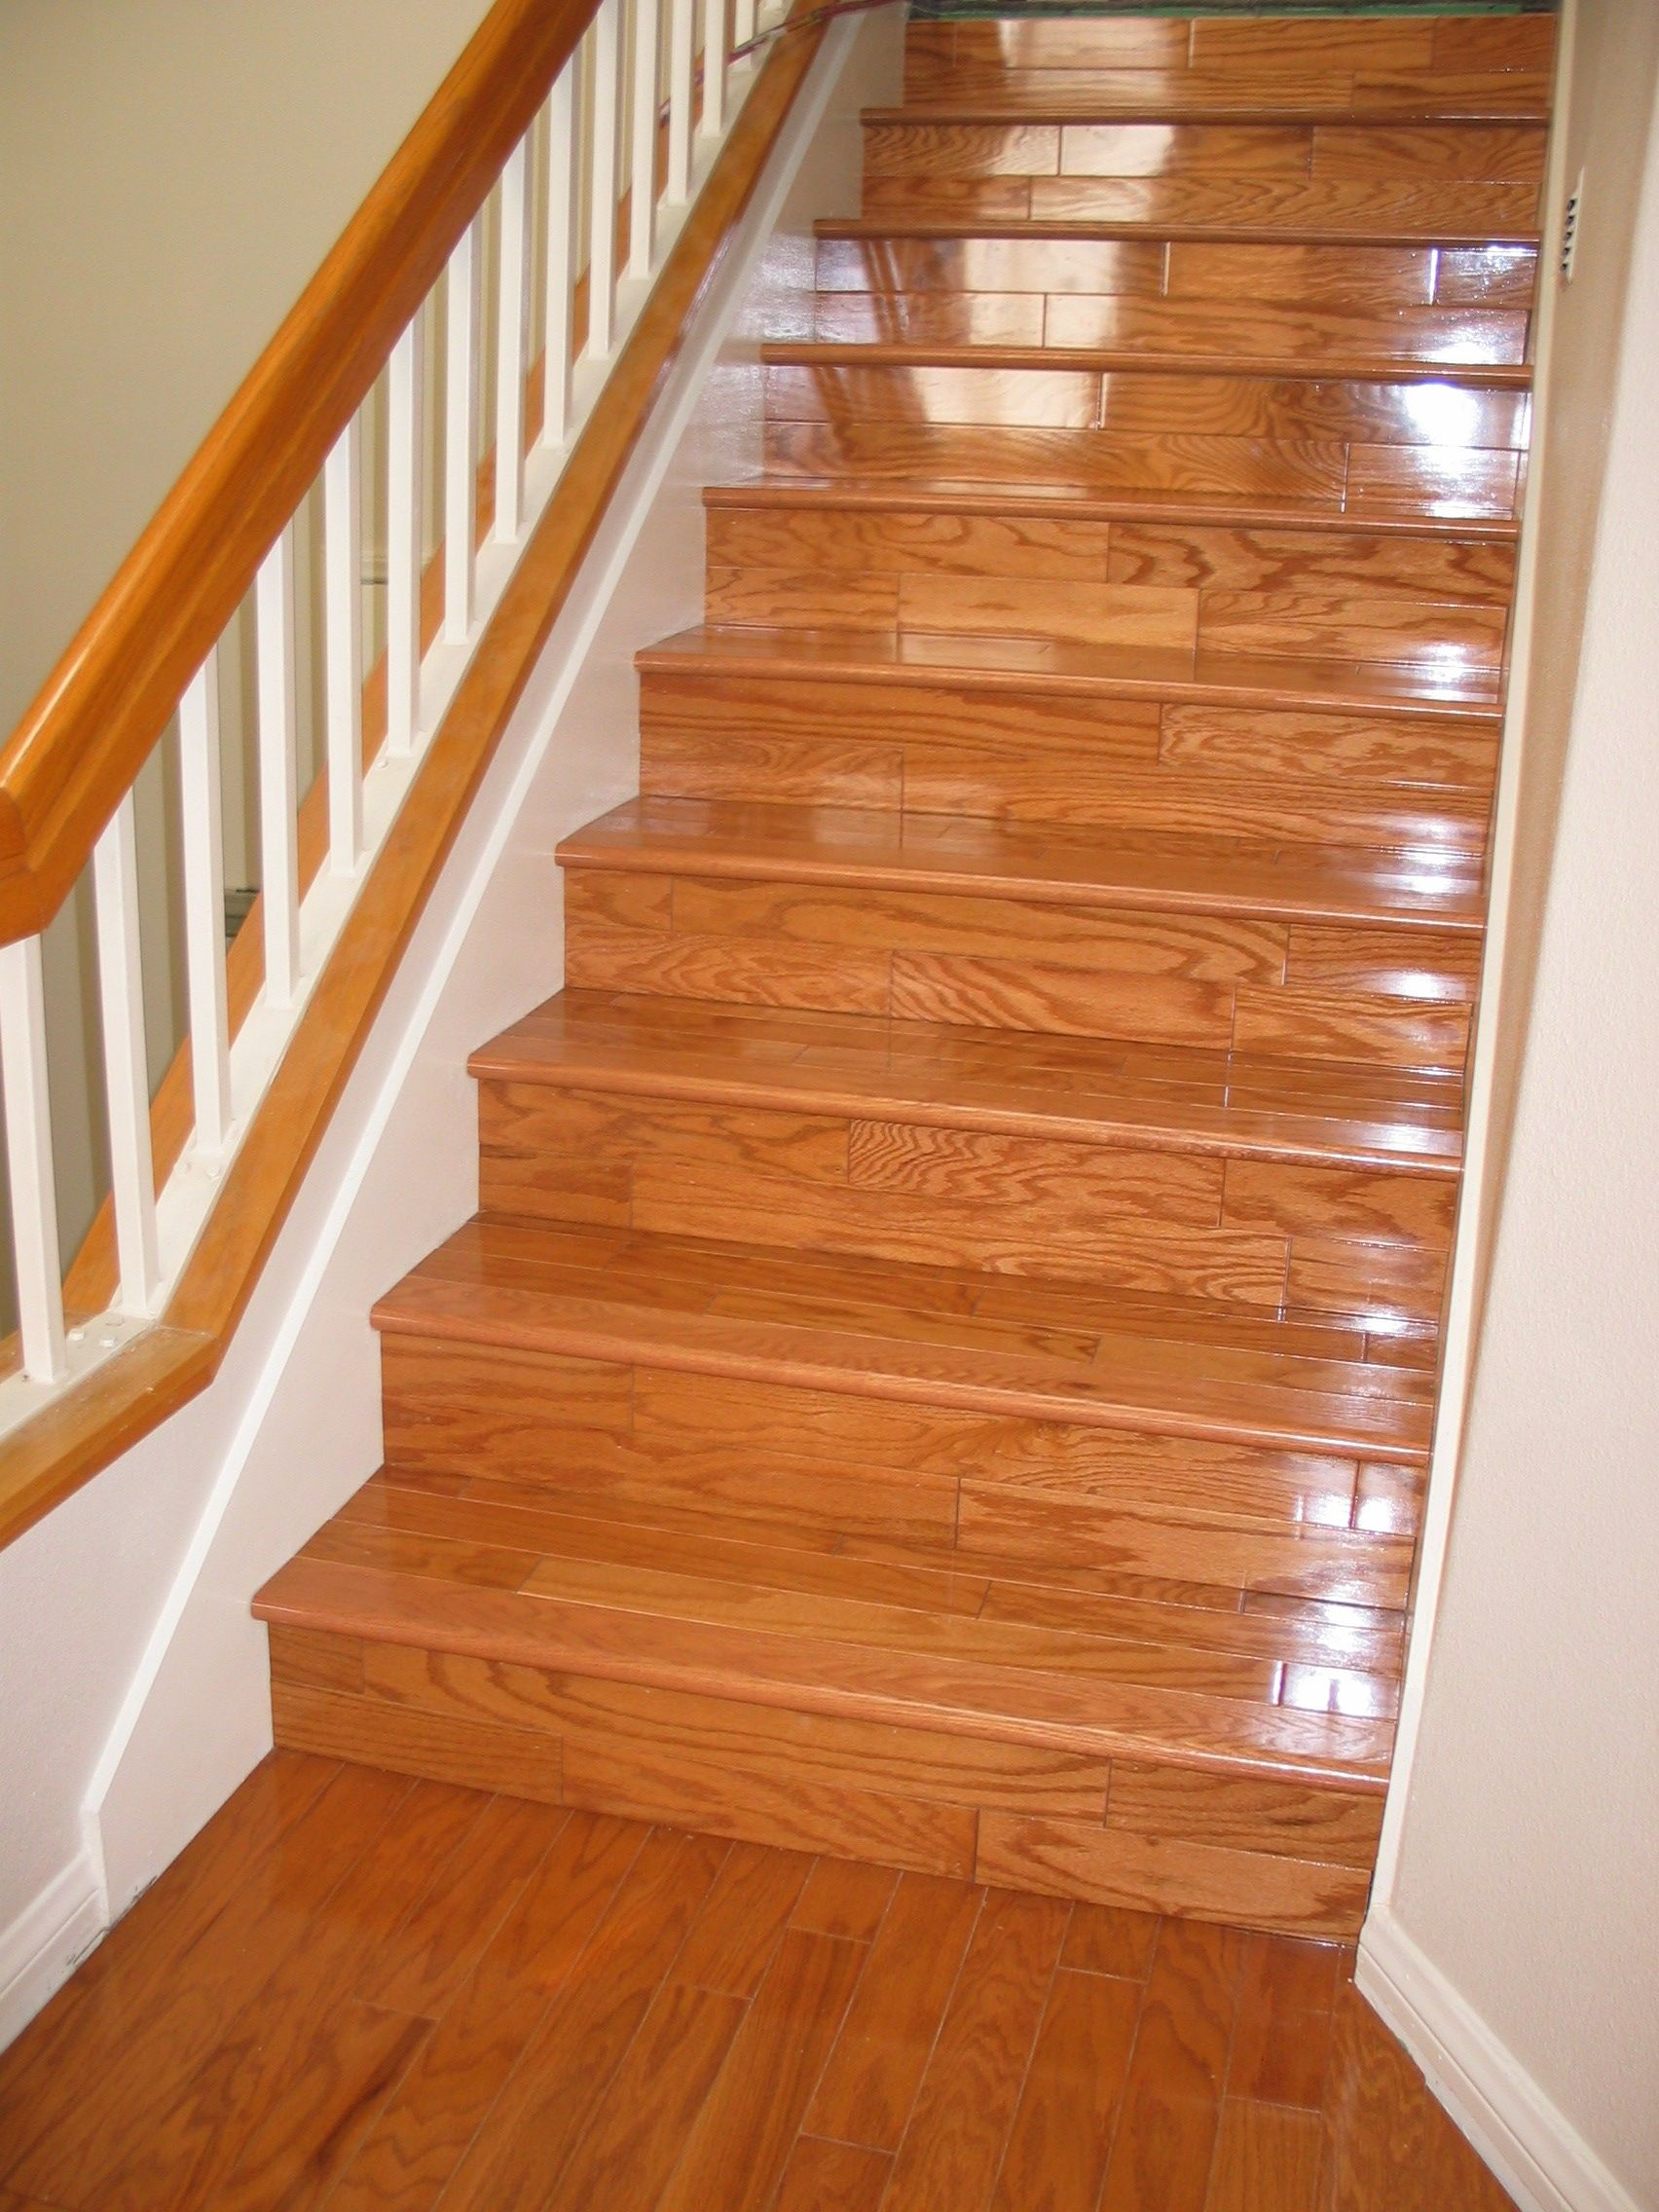 Rich Johnson Flooring Installations and Repairs  Laminate